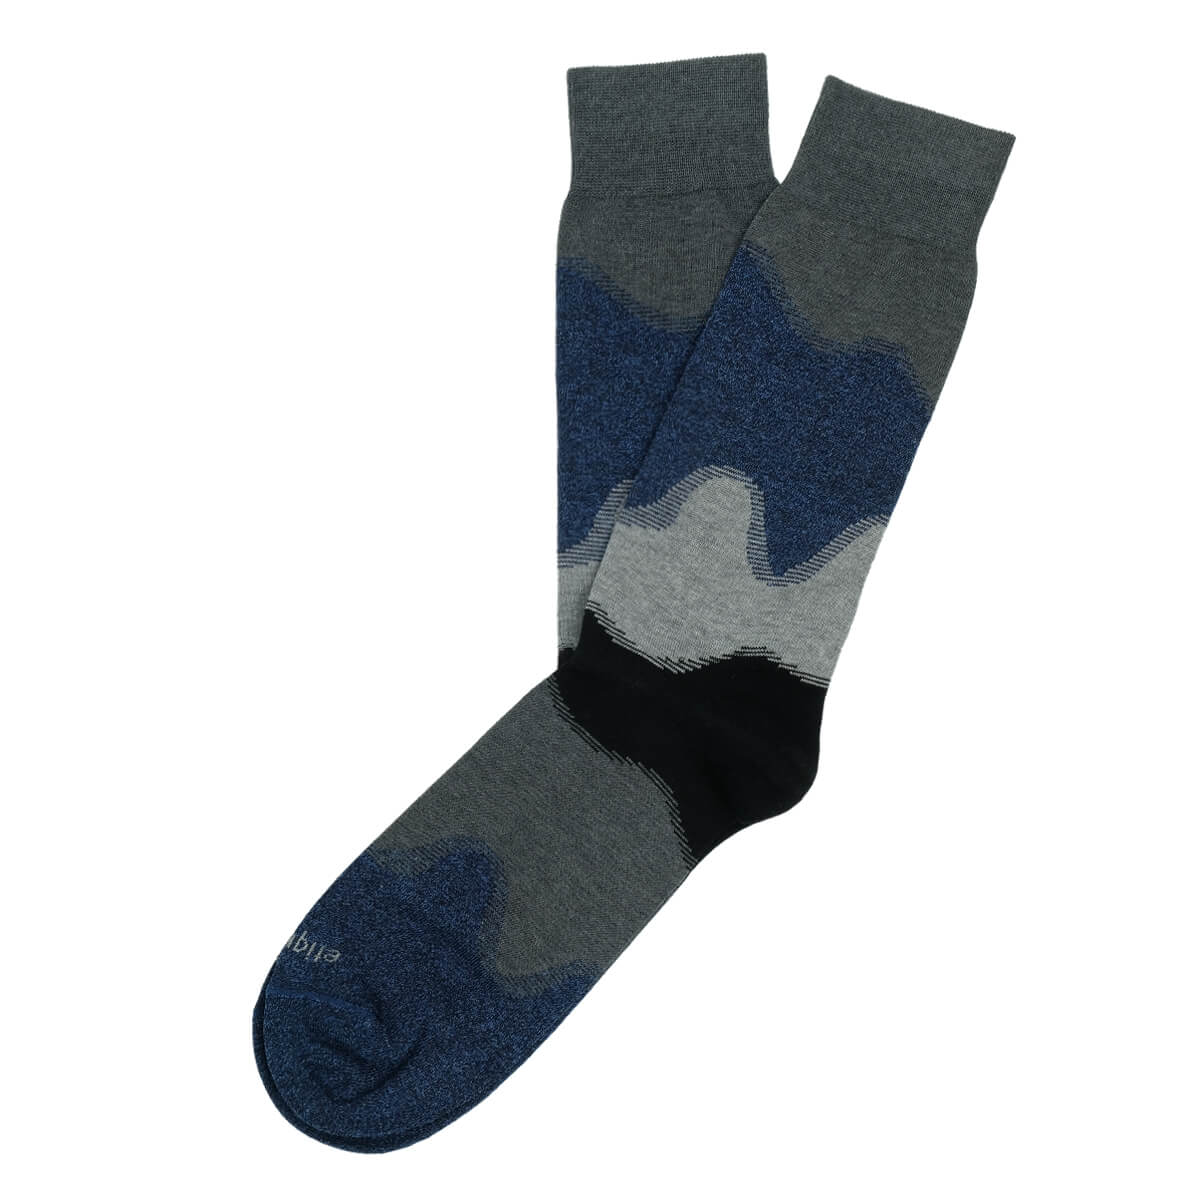 Mens Socks - Idyllic Men's Socks - Dark Grey⎪Etiquette Clothiers